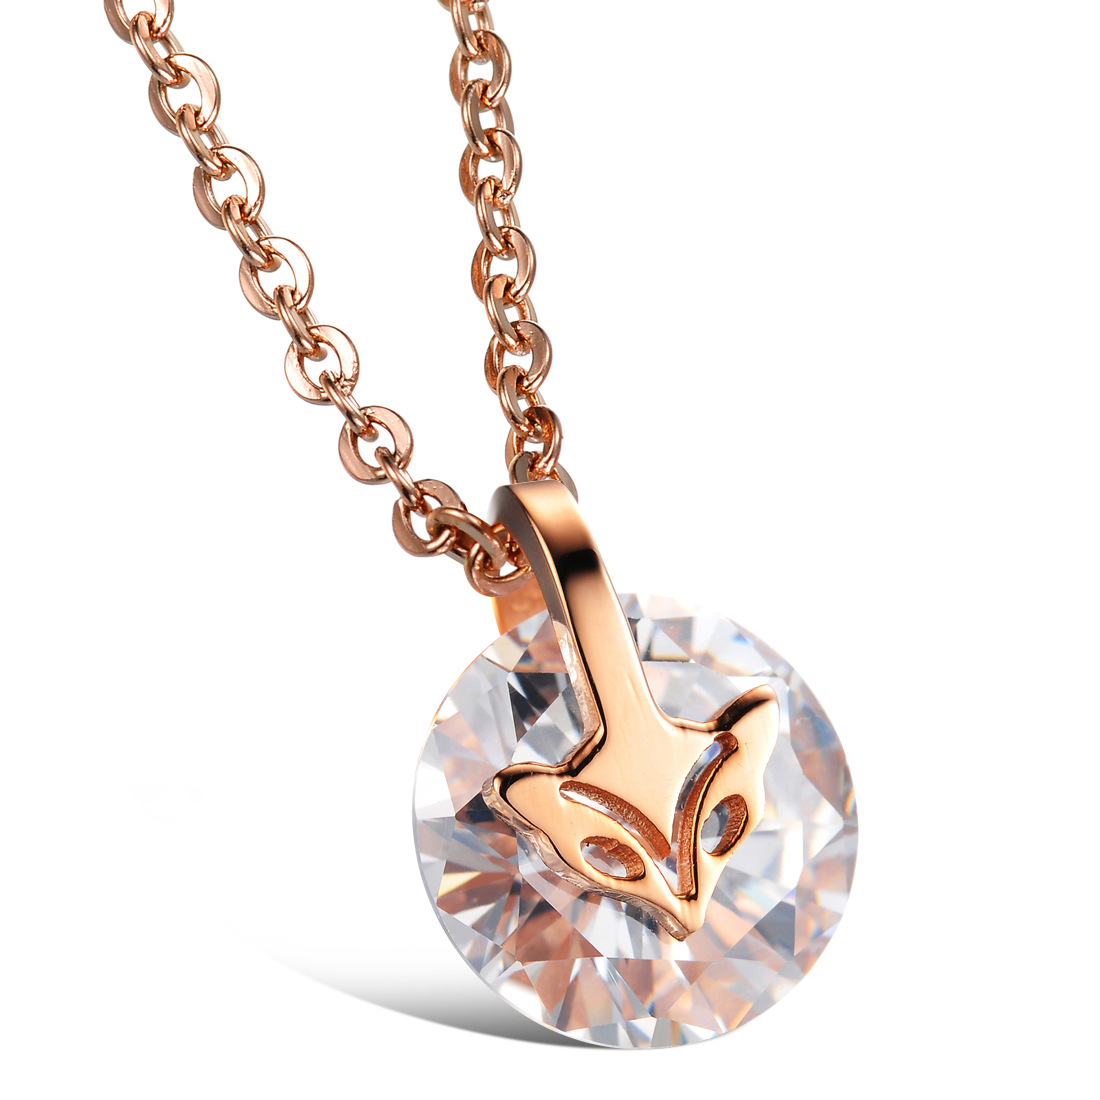 18K White Gold Diamond Bouquet Necklace by Memoire $ 14K White Gold Diamond Halo Pendant by Long's Jewelers $6, 14K White Gold Diamond Halo Pendant.